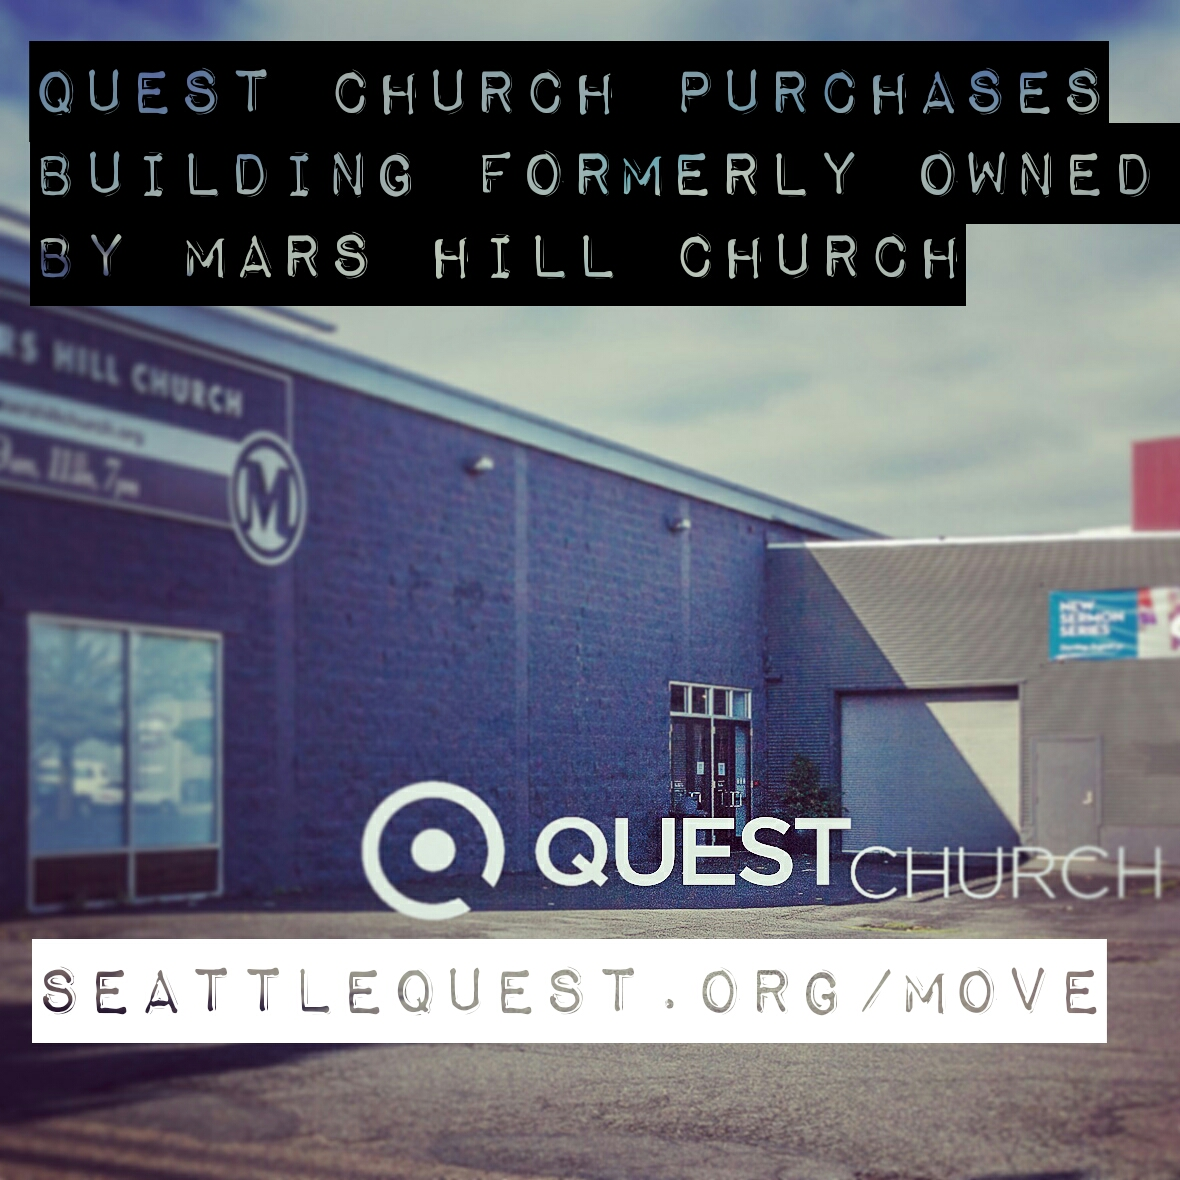 Quest Church has purchased the building formerly known as Mars Hill Church. Full transparency: Here?s why and